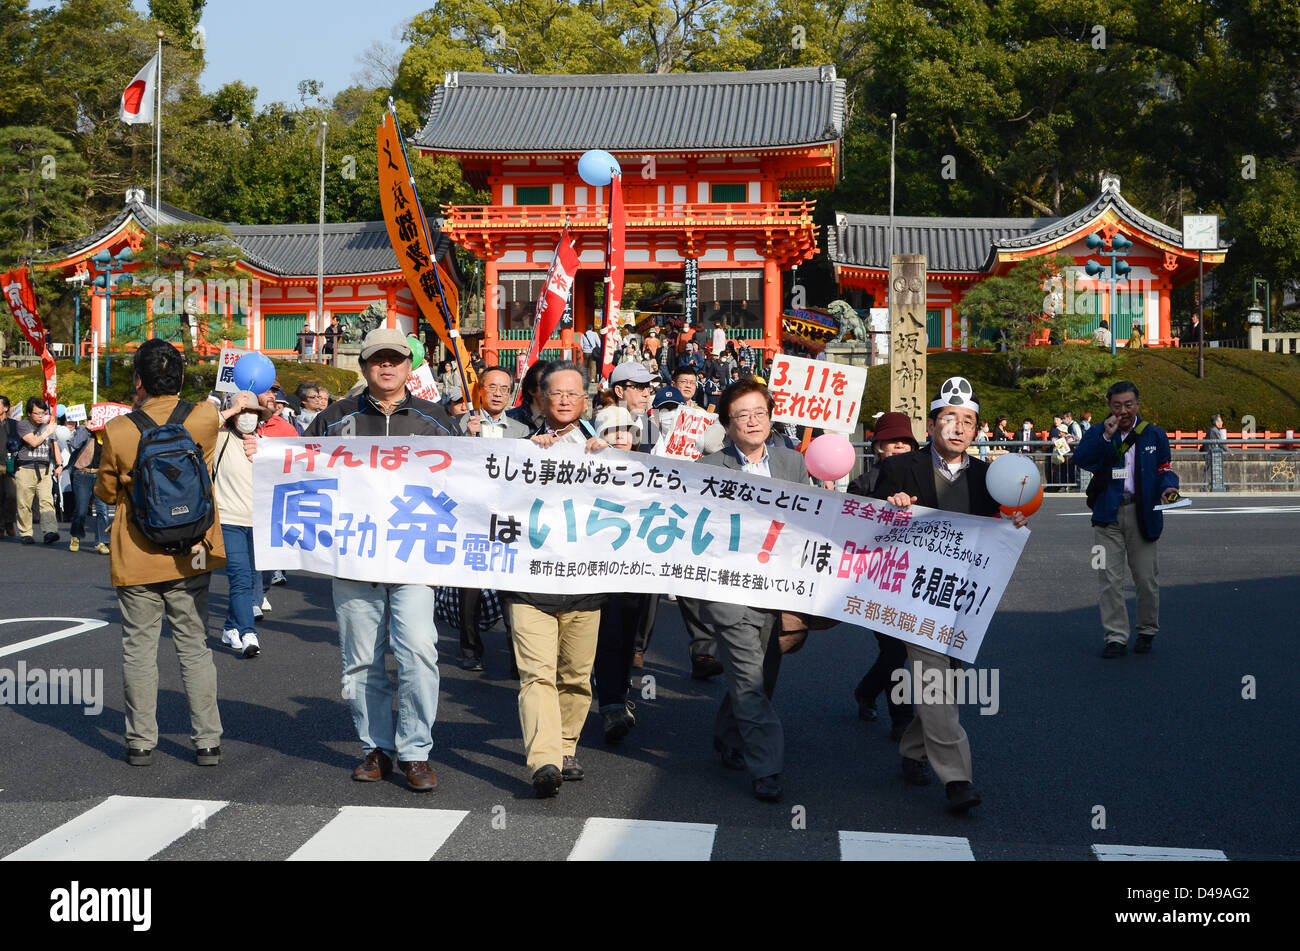 Kyoto, Japan. 9th March 2013. Protesters march through Kyoto against the restart of the country's nuclear power - Stock Image